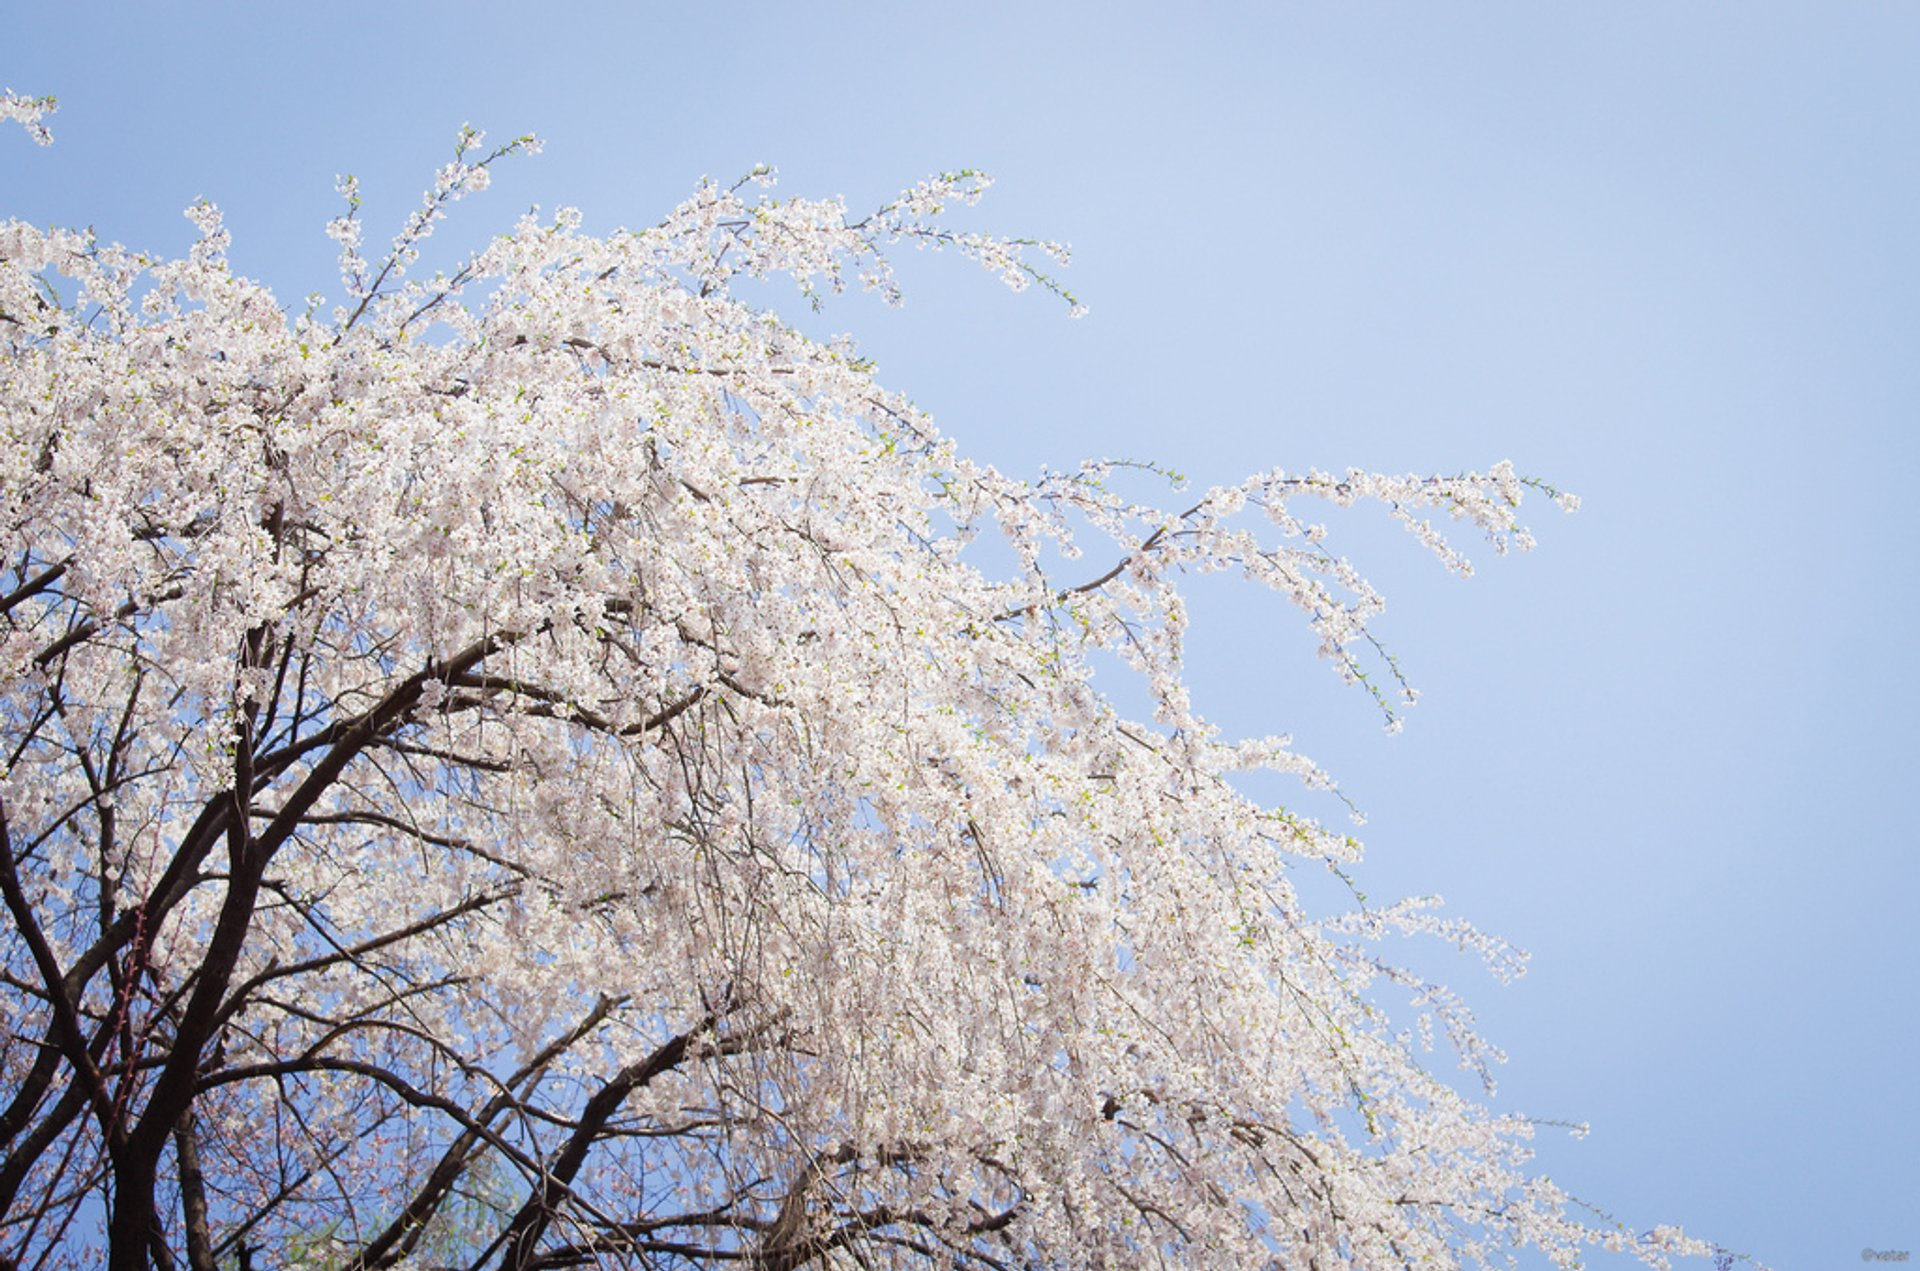 Weeping Cherry Blossoms in Seoul 2020 - Best Time